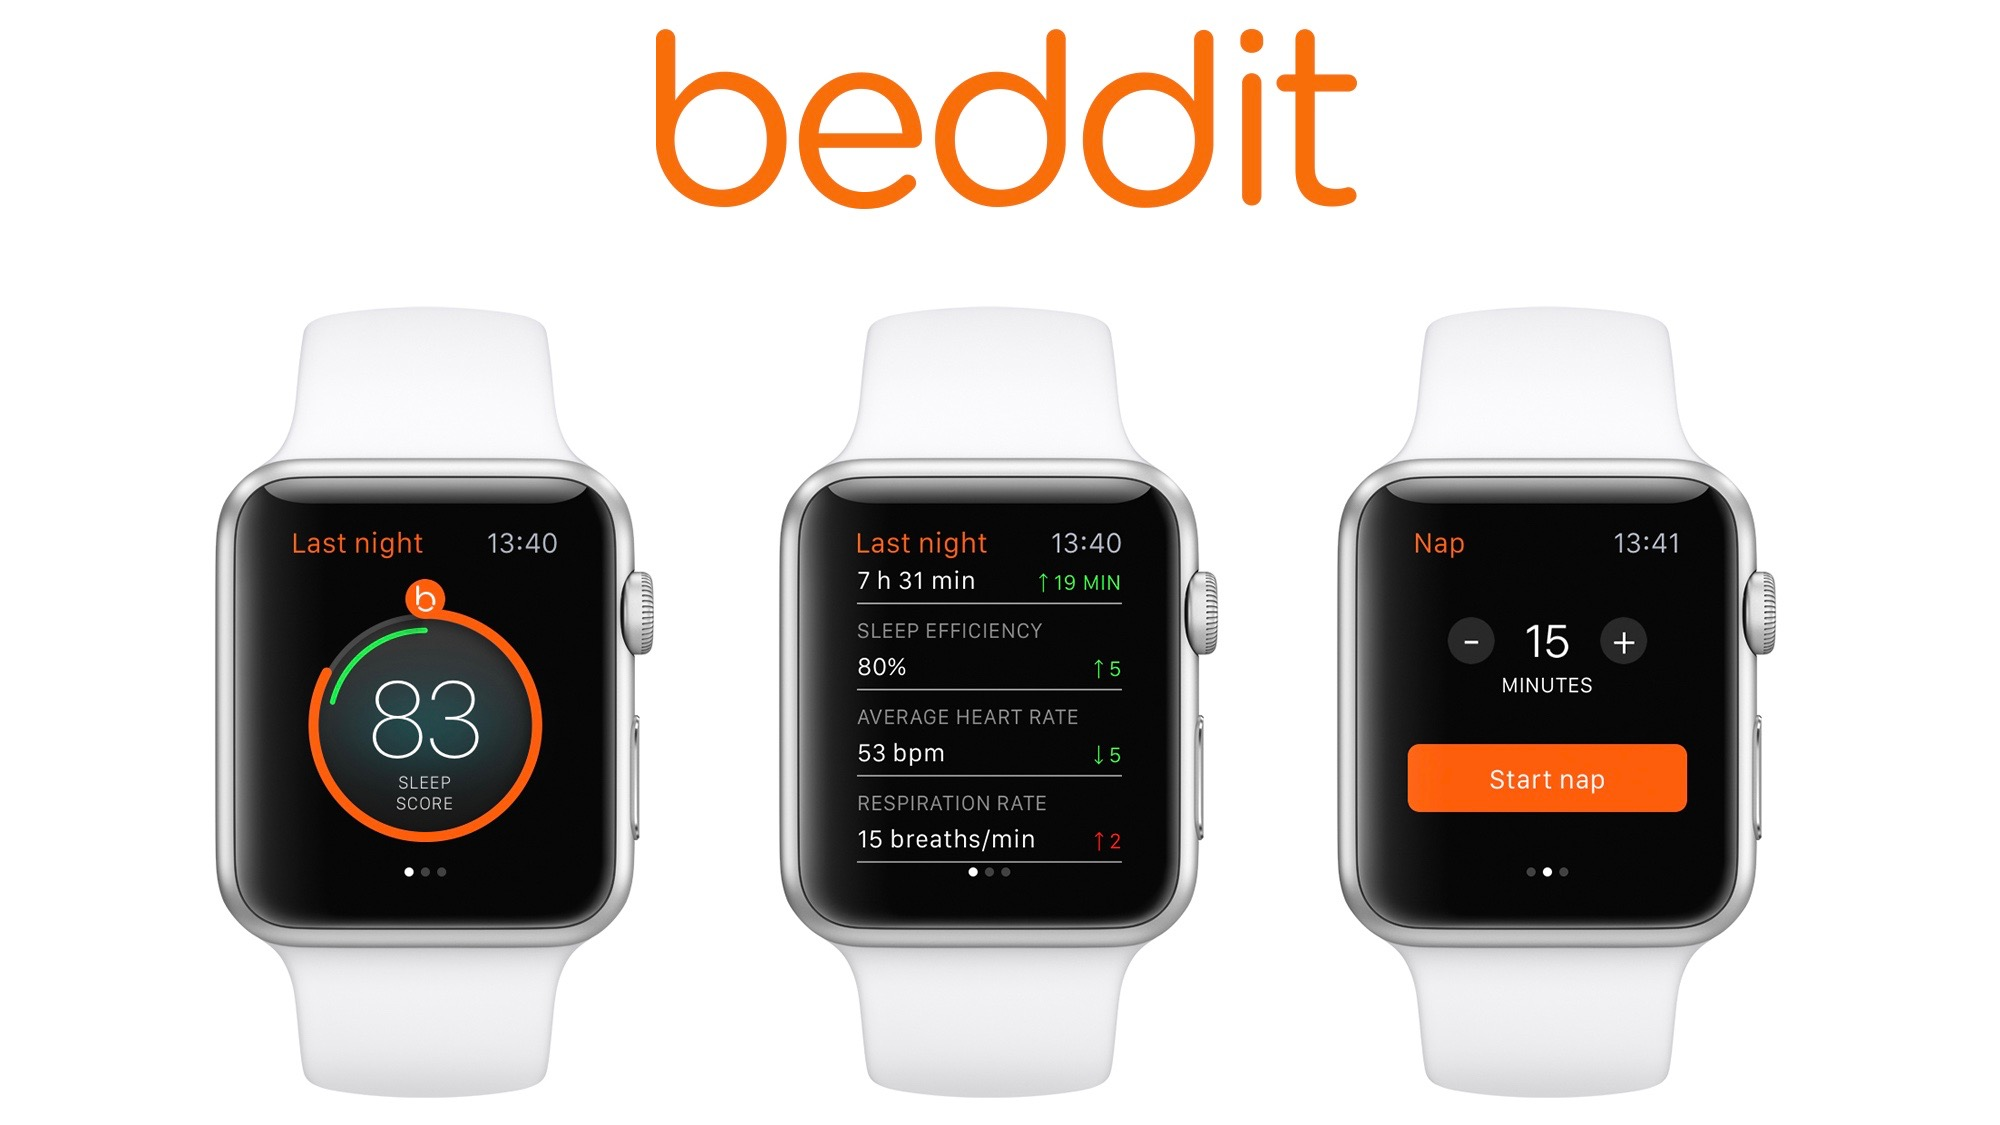 apple acquired beddit sleep tracker shutting down cloud service in november